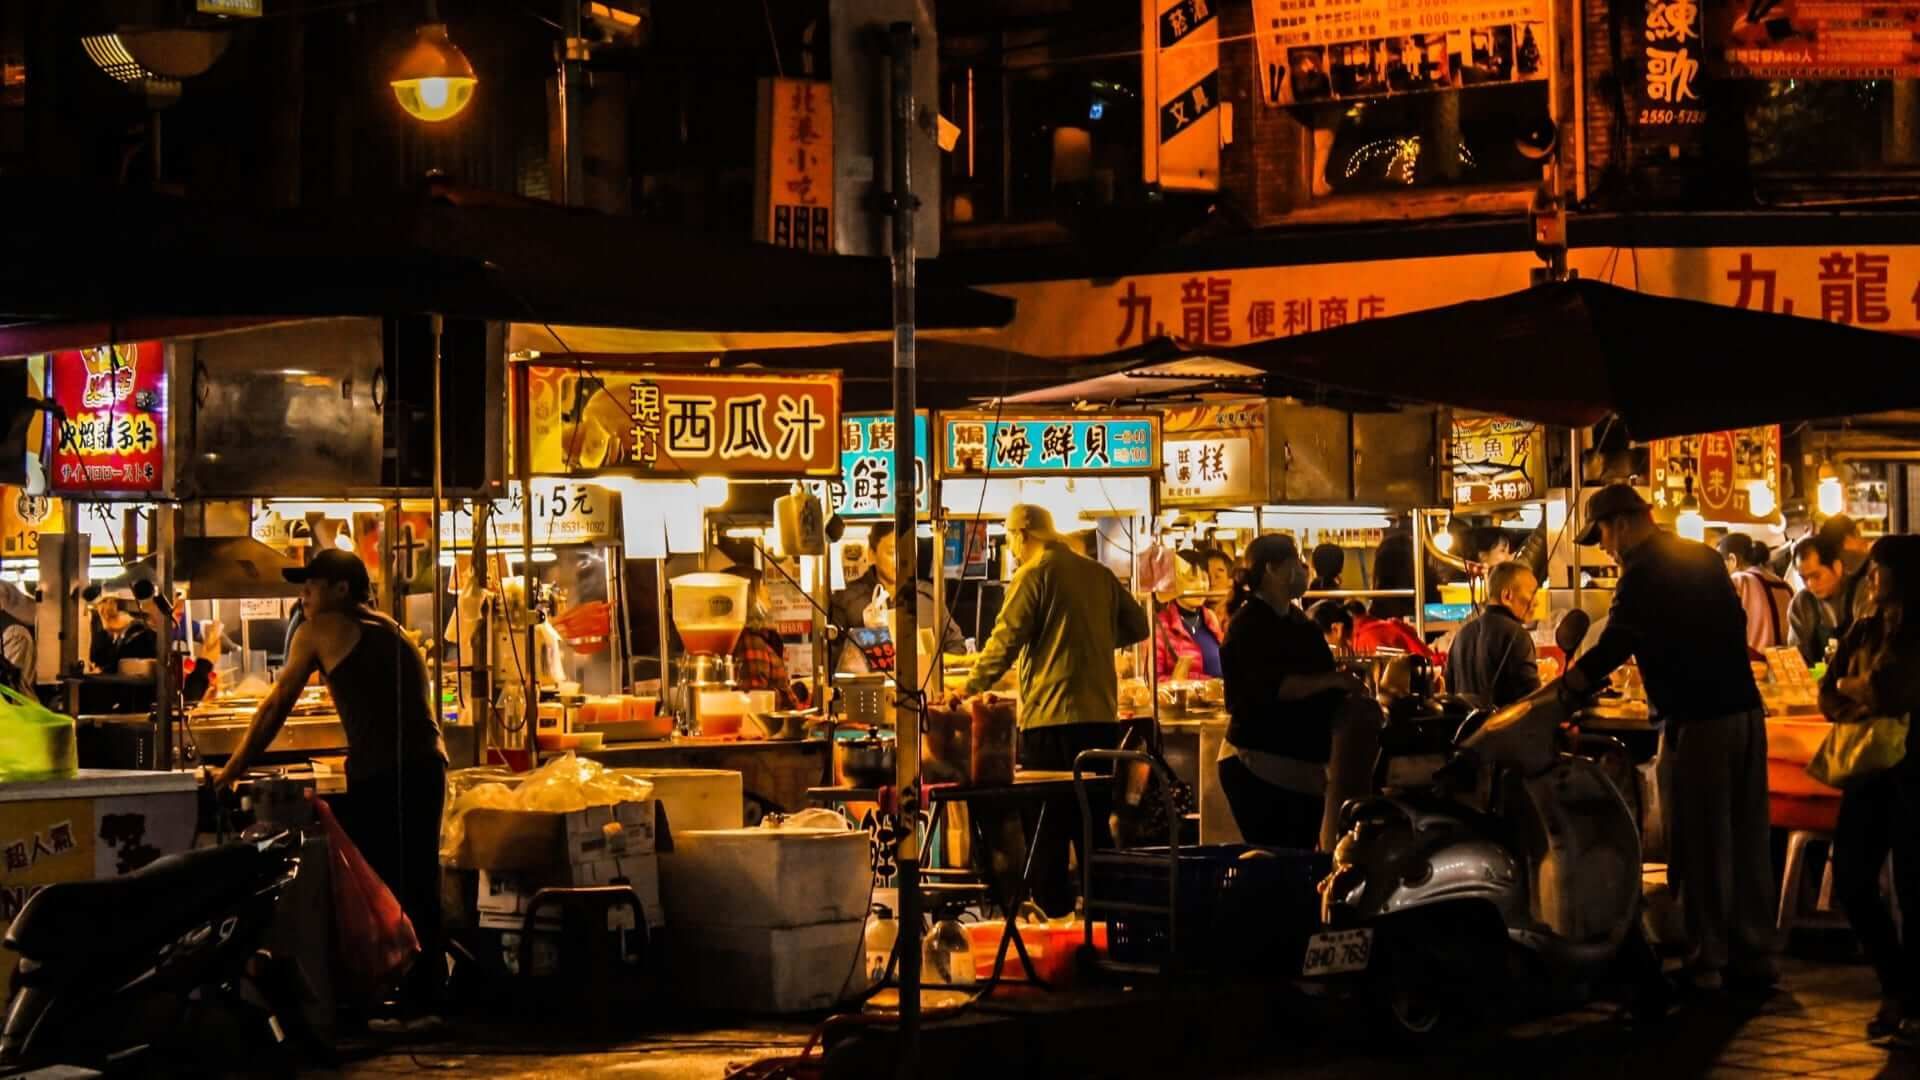 People are buying street food at a night market in Taipei.